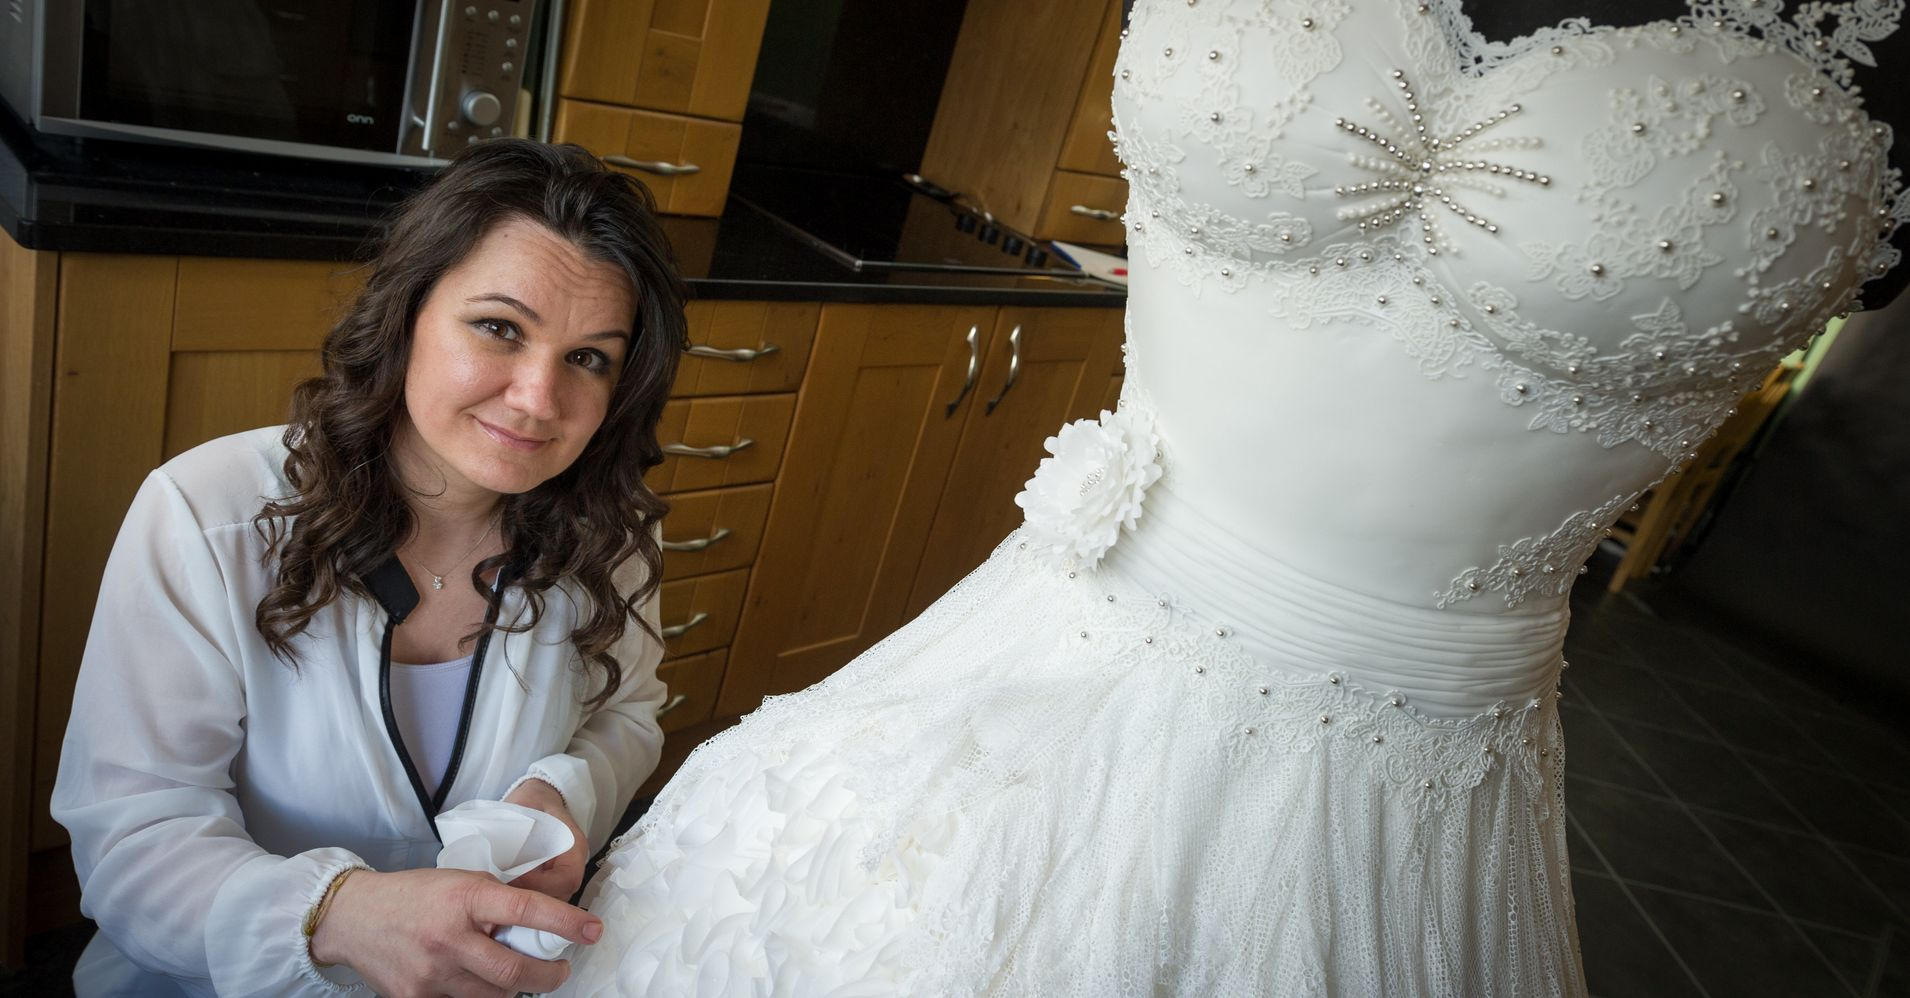 Cheap Wedding Dresses Websites: Epic Edible Wedding Dress Is Made Entirely Of Cake